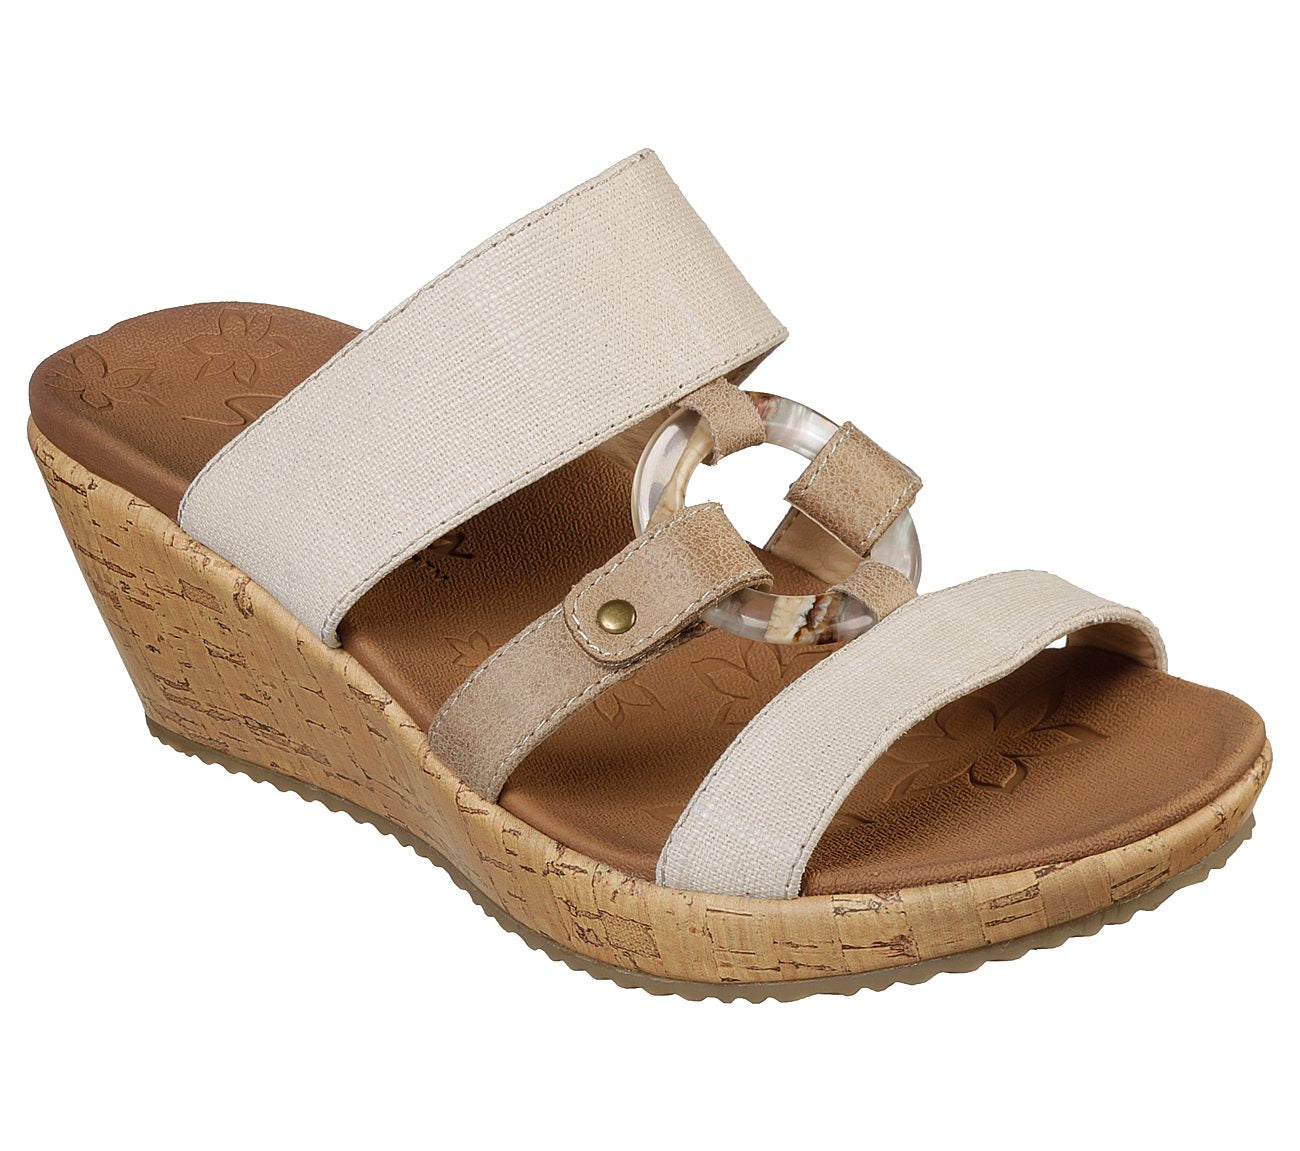 SKECHERS LADIES BEVERLEE SAIL AWAY NATURAL SANDAL